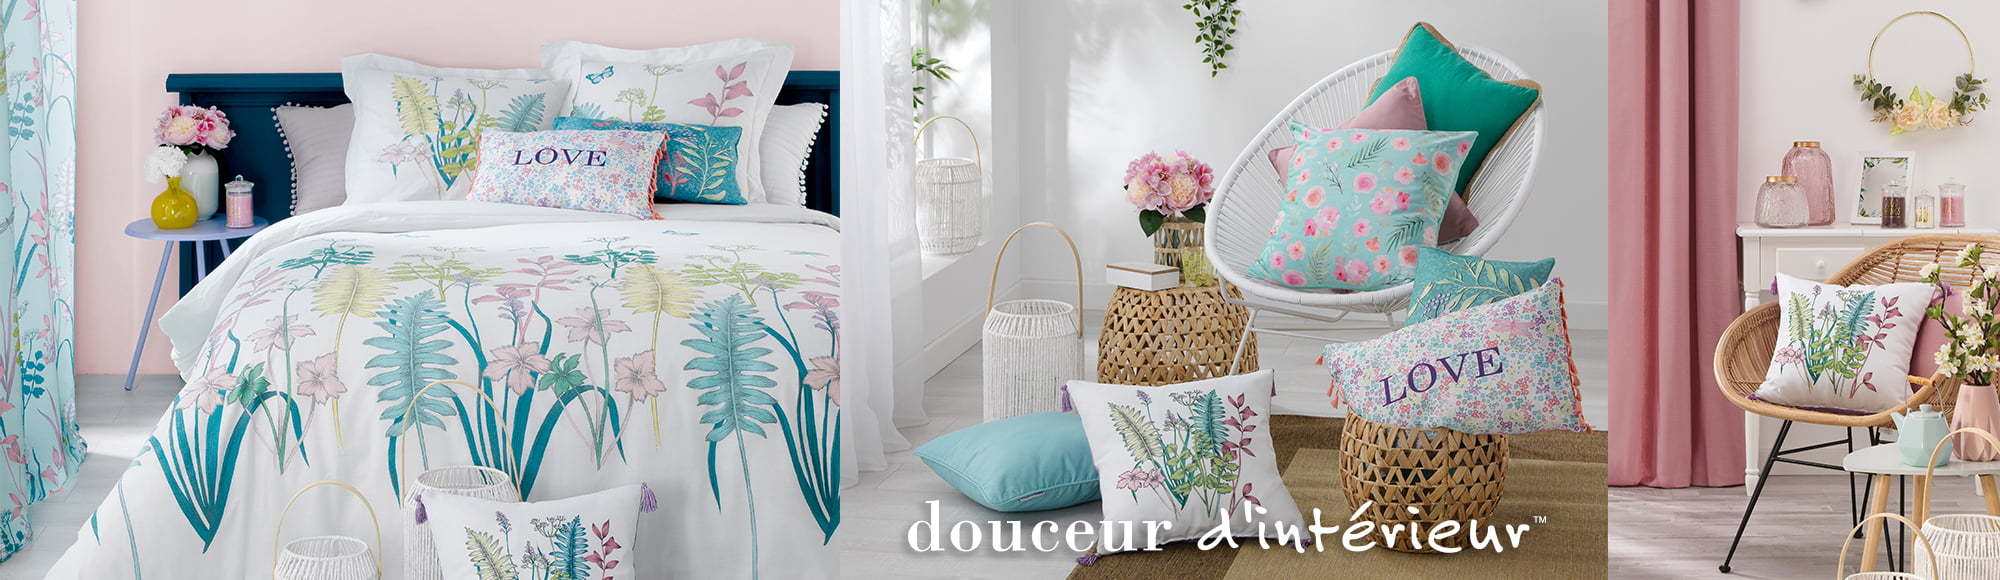 ecoration supplier_EN_douceur d interieur - bed linen soft furnishing decoration - fresh garden collection